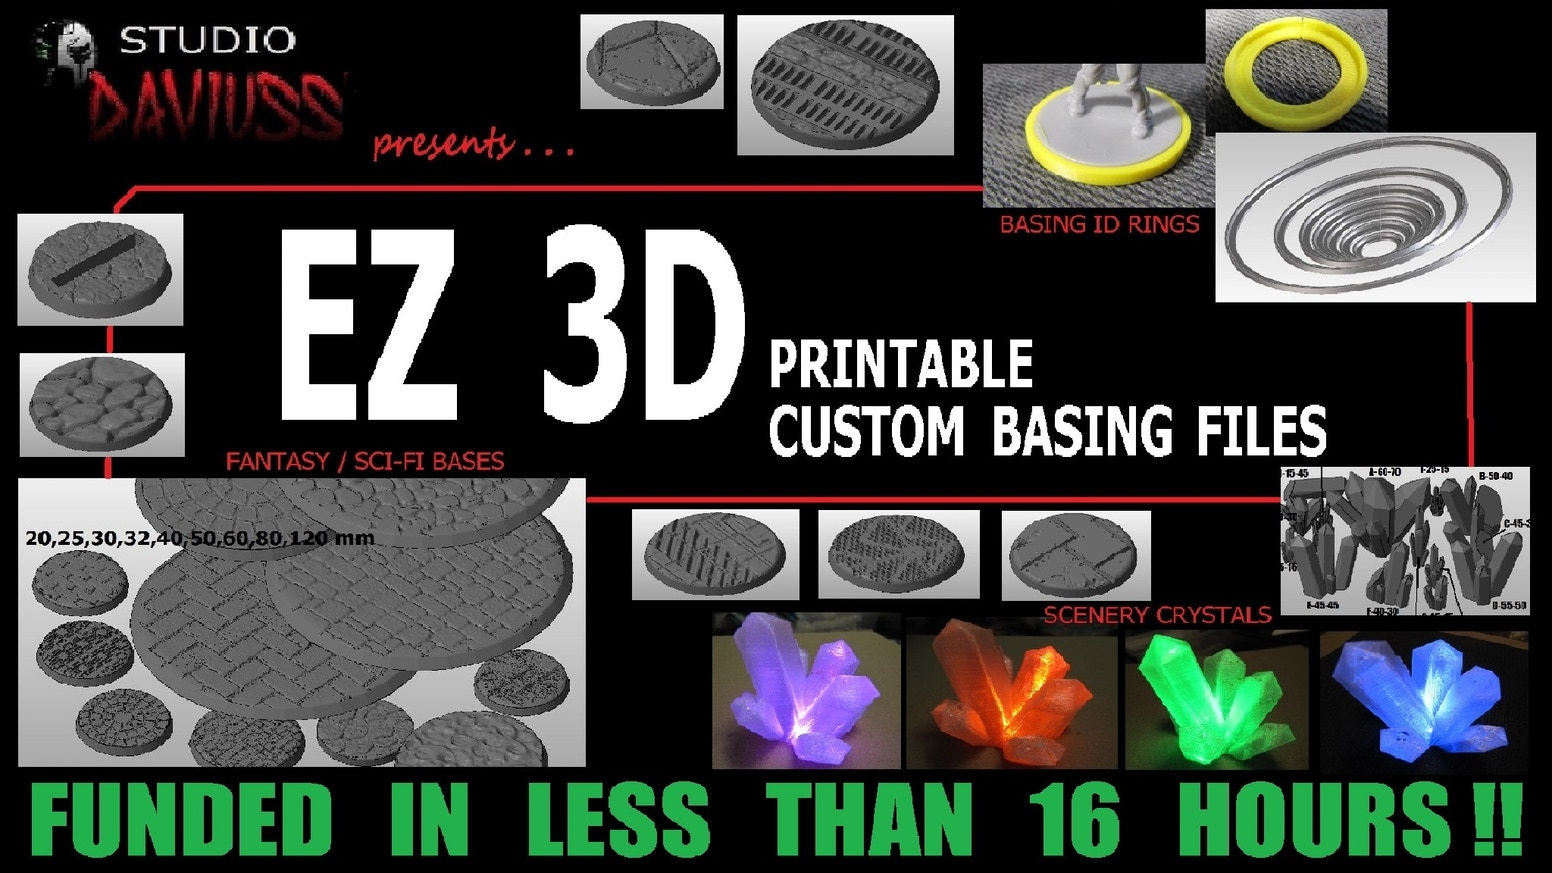 EASY-TO-PRINT 3D FILES for FANTASY & SCI-FI GAMING MINIATURES BASES in 20/25/30/32/40/50/60/80/120mm, ID RINGS, and SCENERY CRYSTALS.